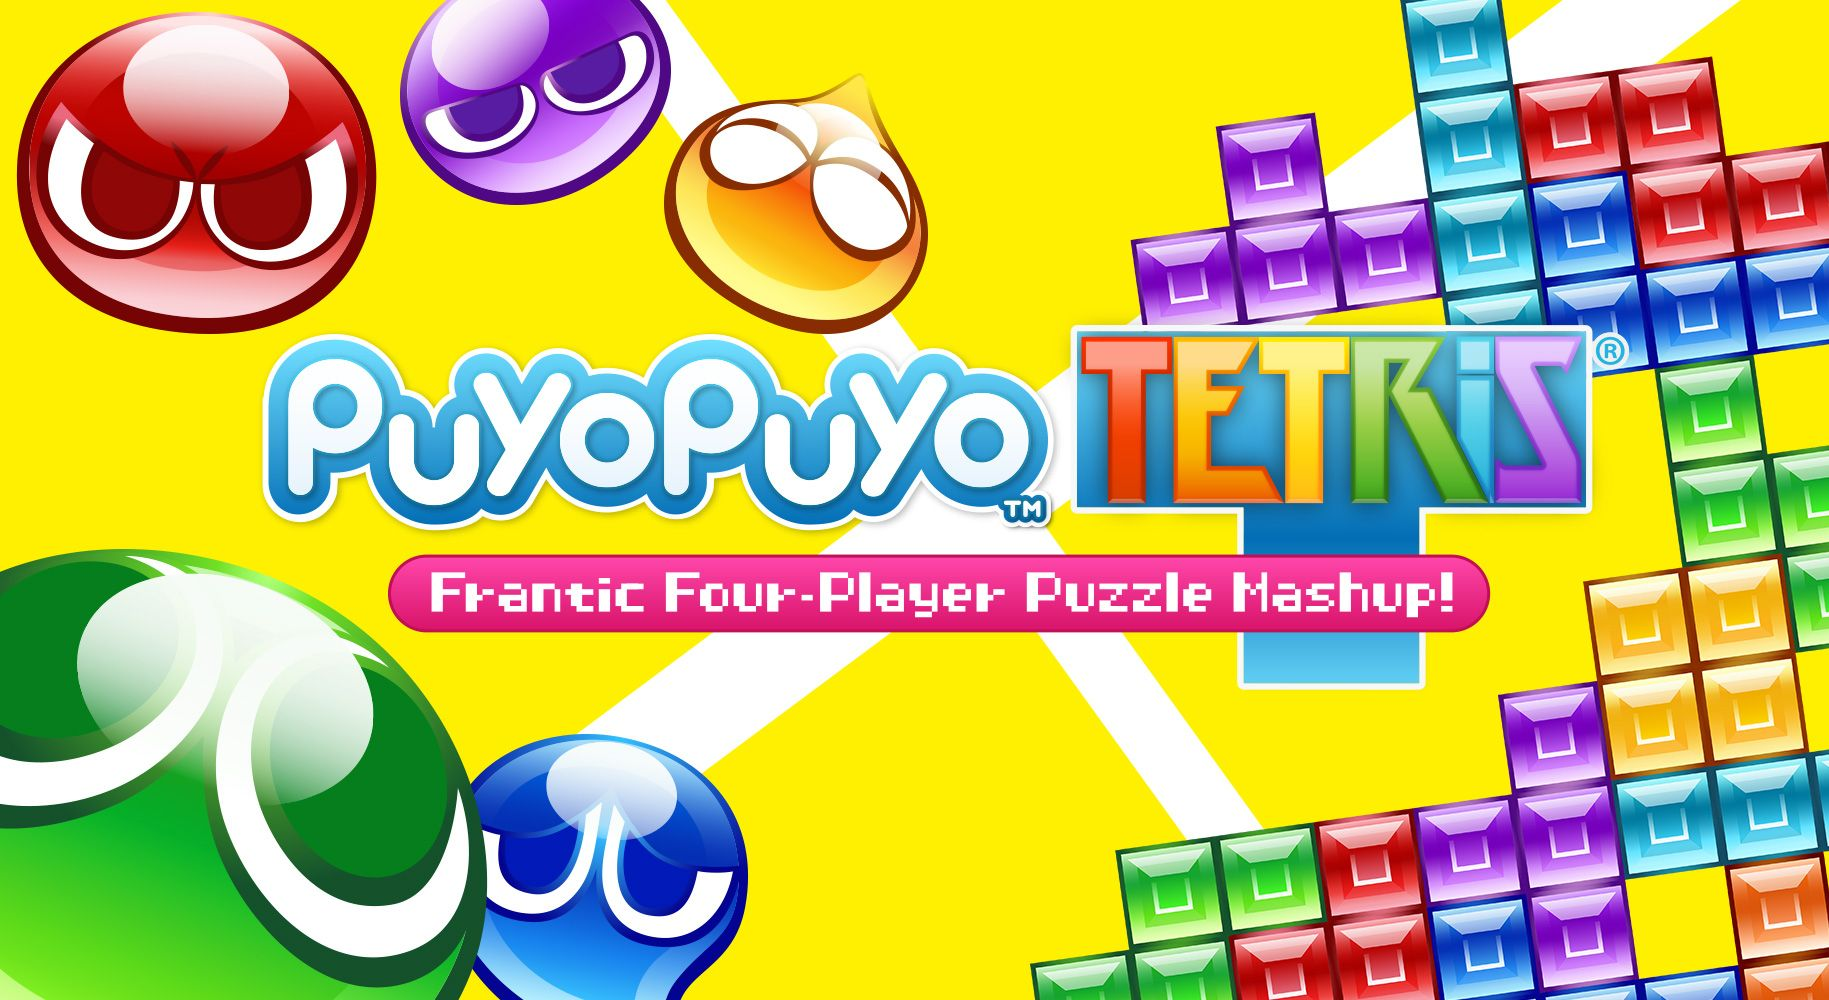 A review of the game Puyo Puyo Tetris